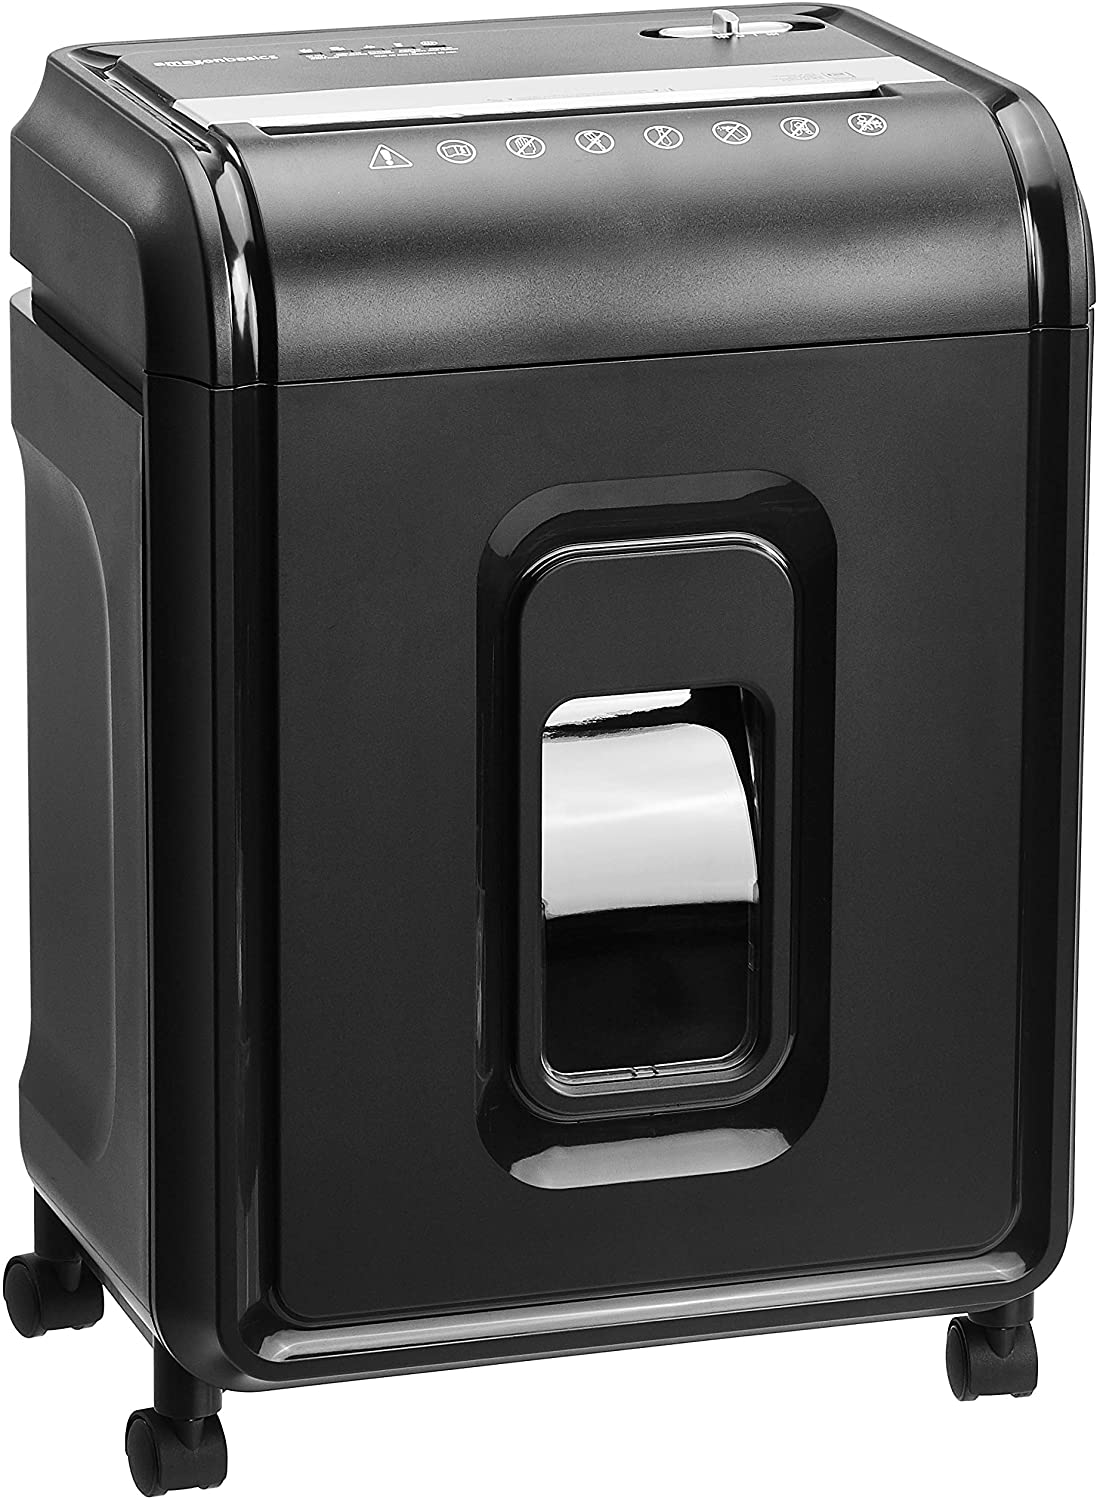 12-Sheet Capacity, Credit Card & CD Shredder with casters 5.7 gallons